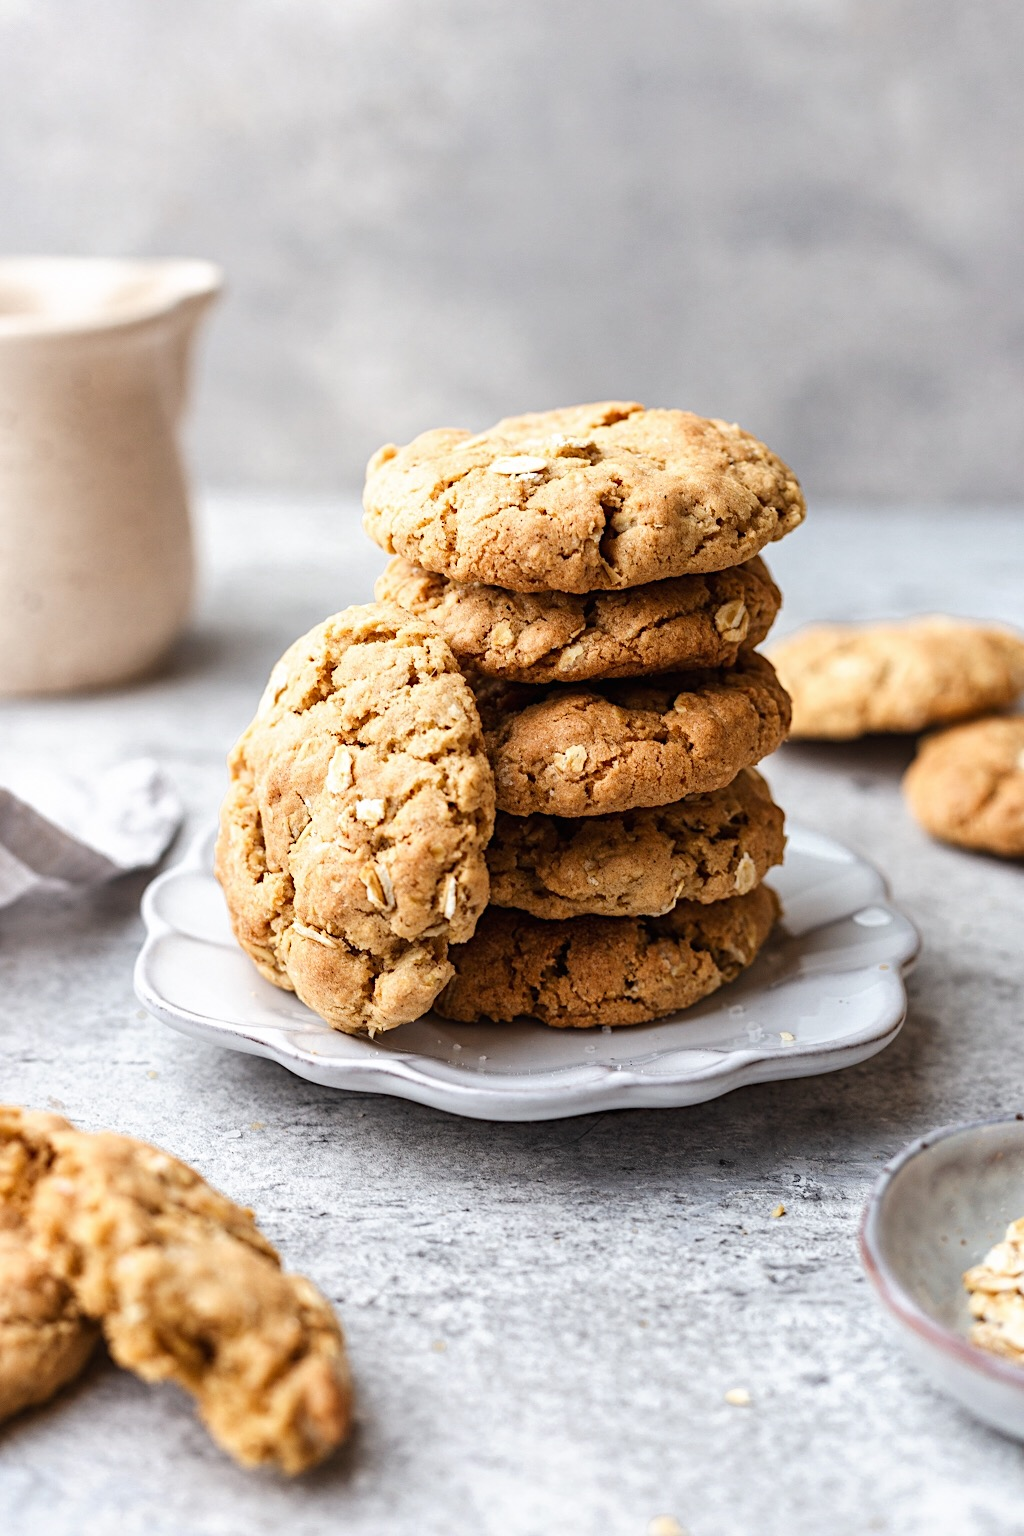 Vegan Oat Cookie Stack #vegan #oat #cookies #recipe #dairyfree #eggfree #baking